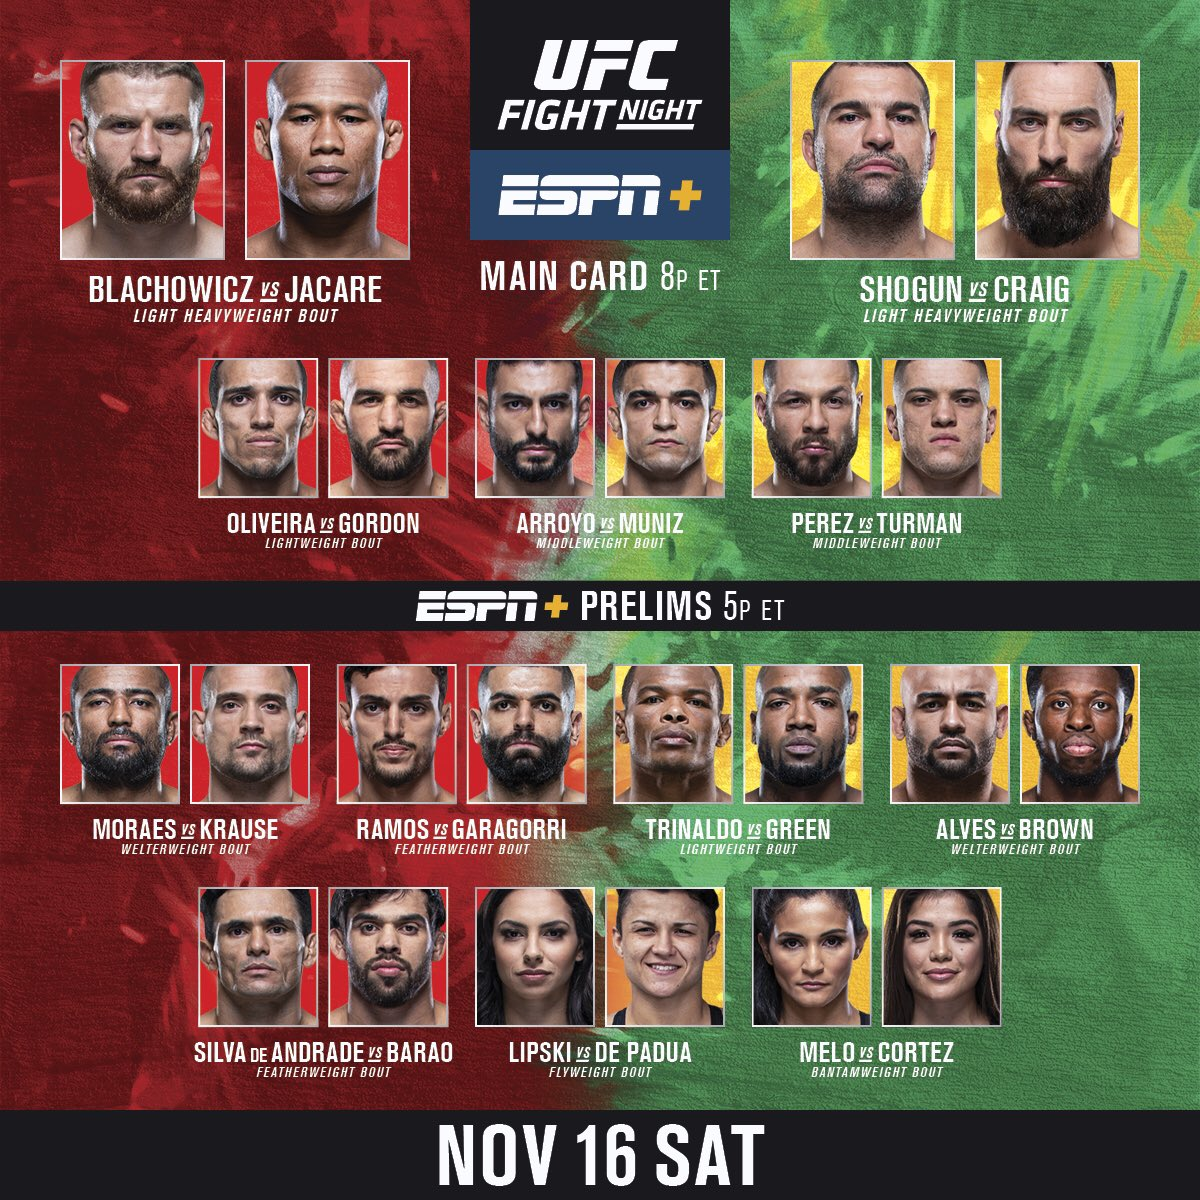 🇧🇷 Bom dia!   IT'S FIGHT DAY from Brazil! #UFCSP gets started on E+ at 5pmET https://t.co/EocdCnKKla